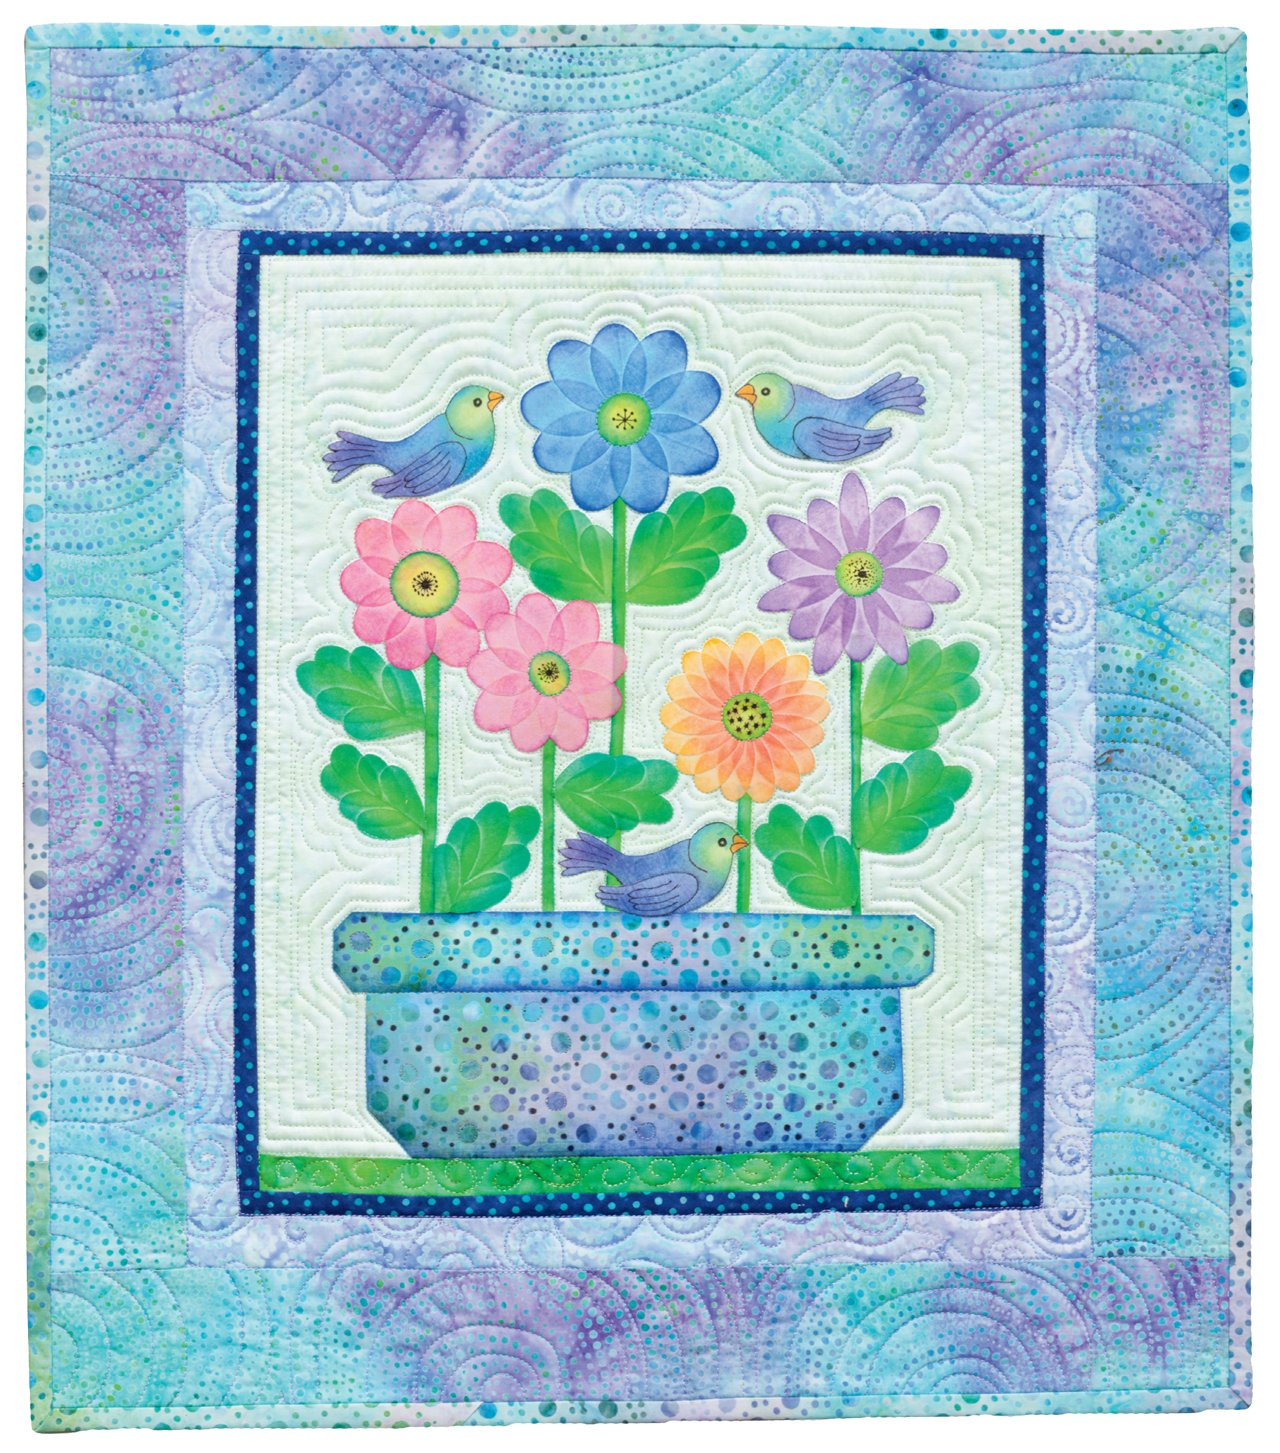 Creative Quilts from Your Crayon Box: Melt-n-Blend Meets Fusible Applique by That Patchwork Place (Image #4)